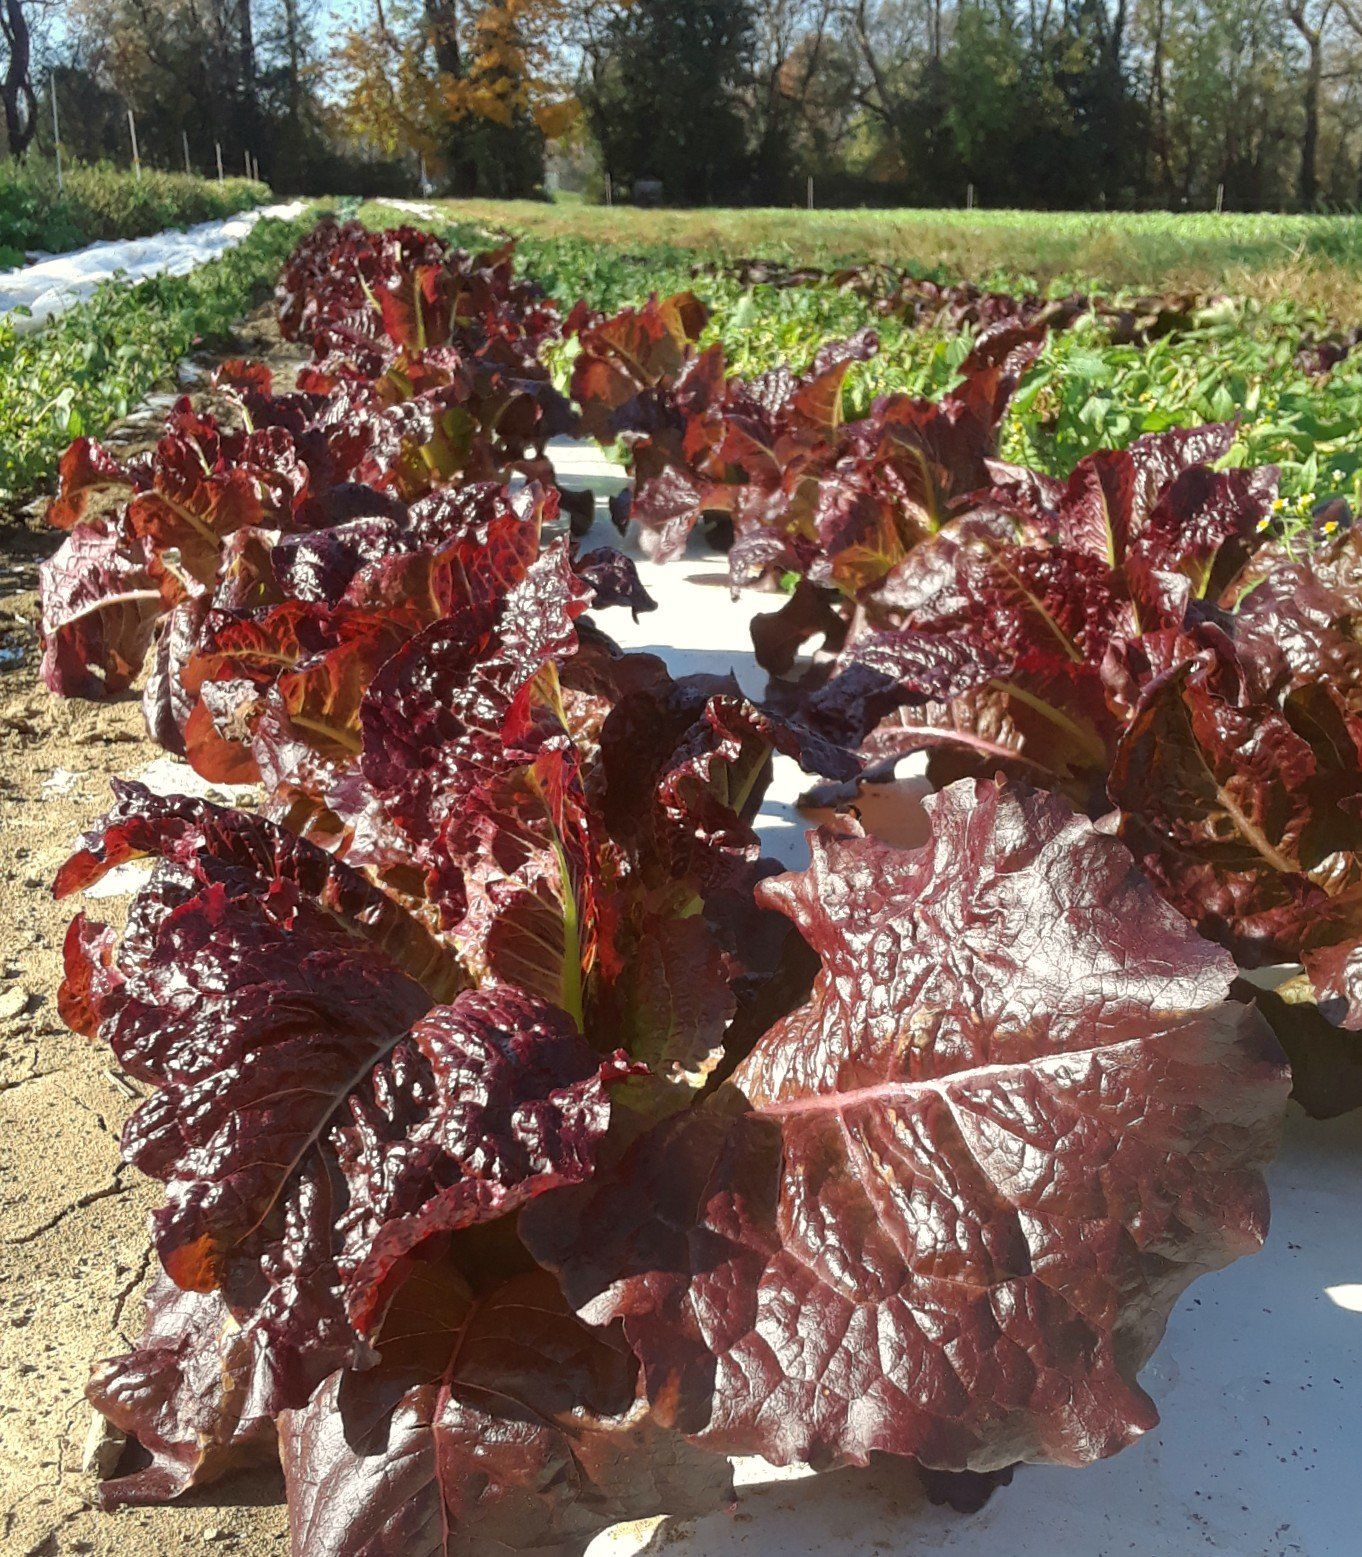 Farm happenings for Week of November 9th